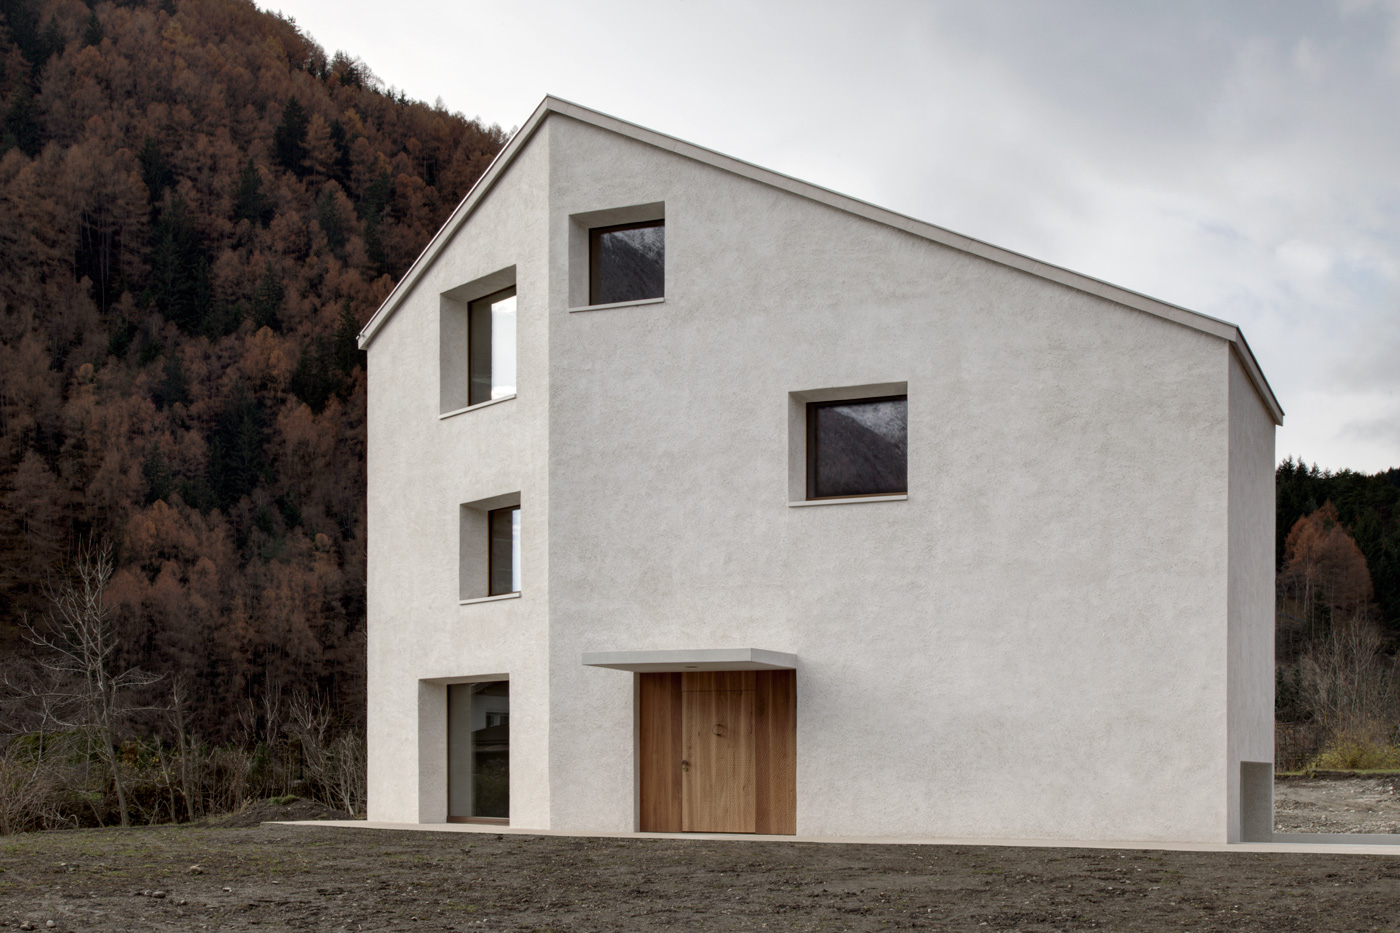 House at Mill Creek in Mühlen in Taufers, Italy by Pedevilla Architekten